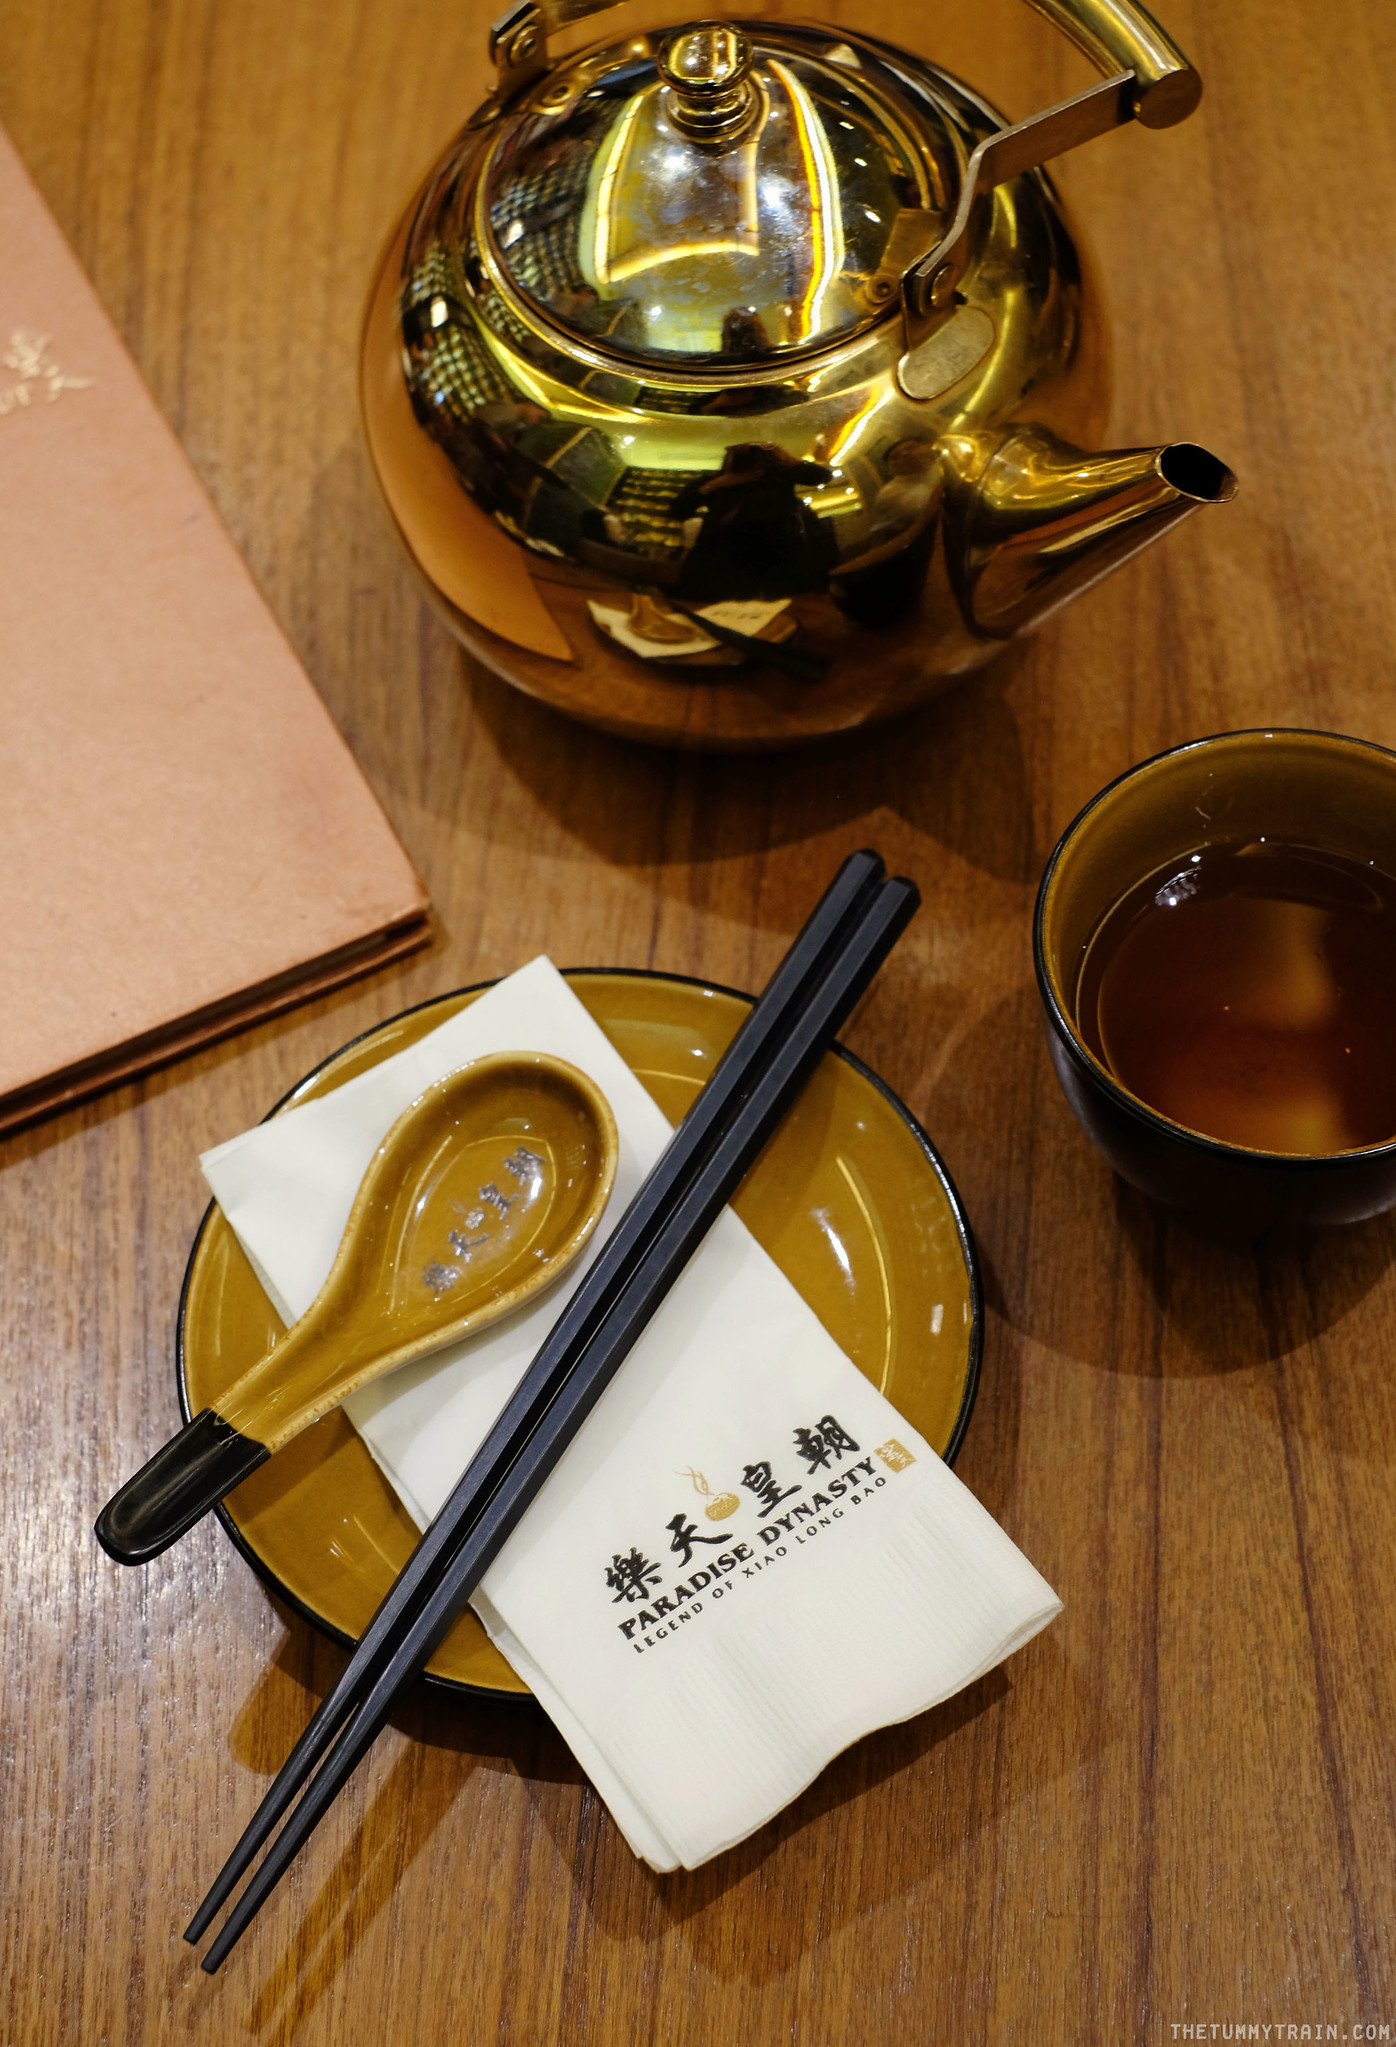 33188872565 55a4a422b5 k - Sampling the famous colourful xiao long bao at Paradise Dynasty S Maison